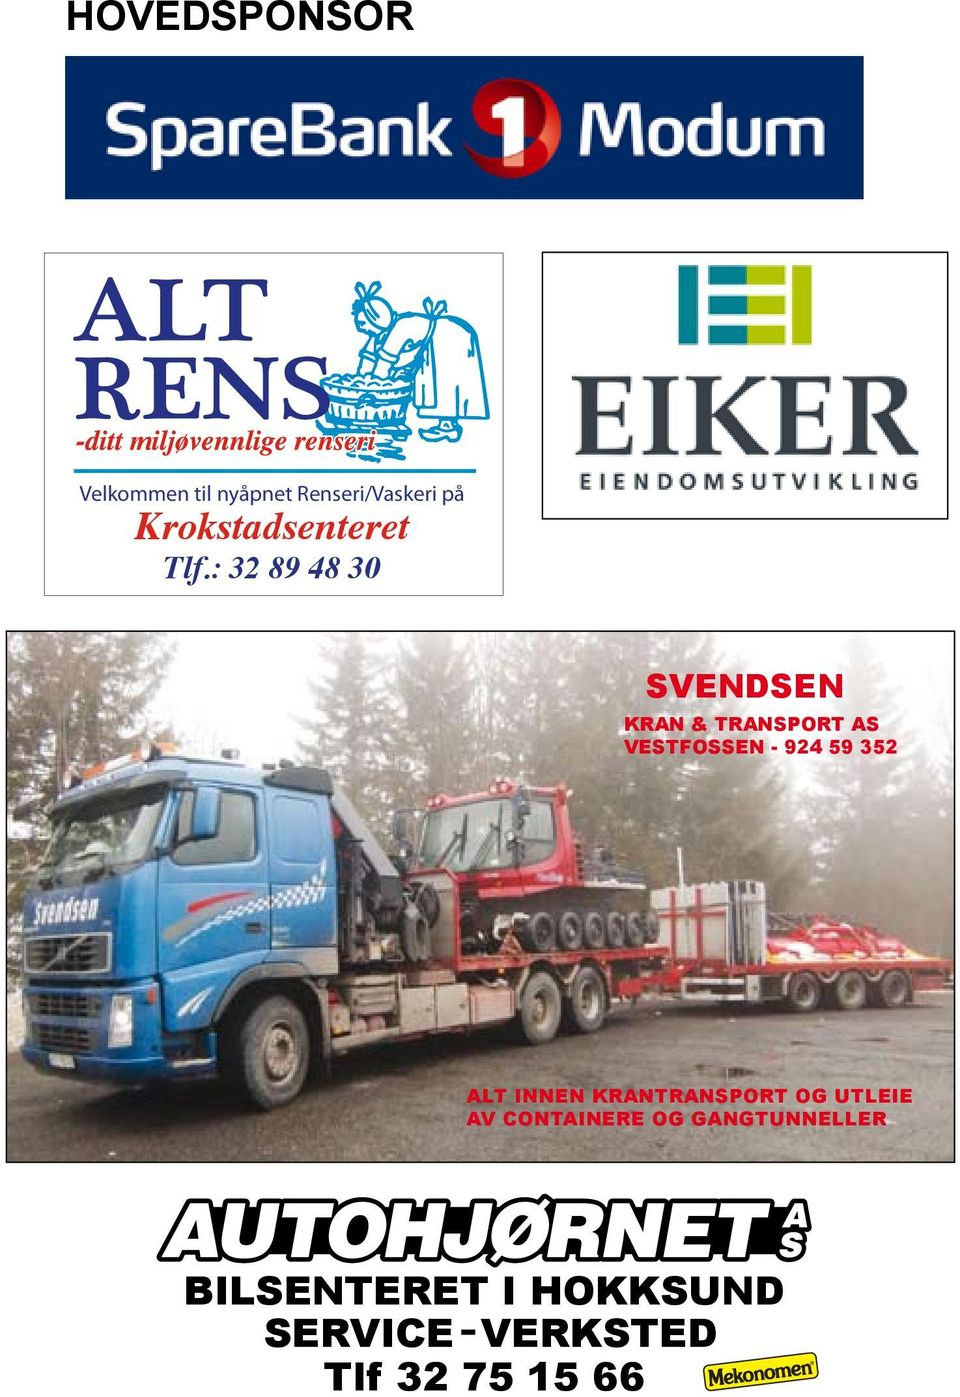 : 32 89 48 30 SVENDSEN KRAN & TRANSPORT AS VESTFOSSEN - 924 59 352